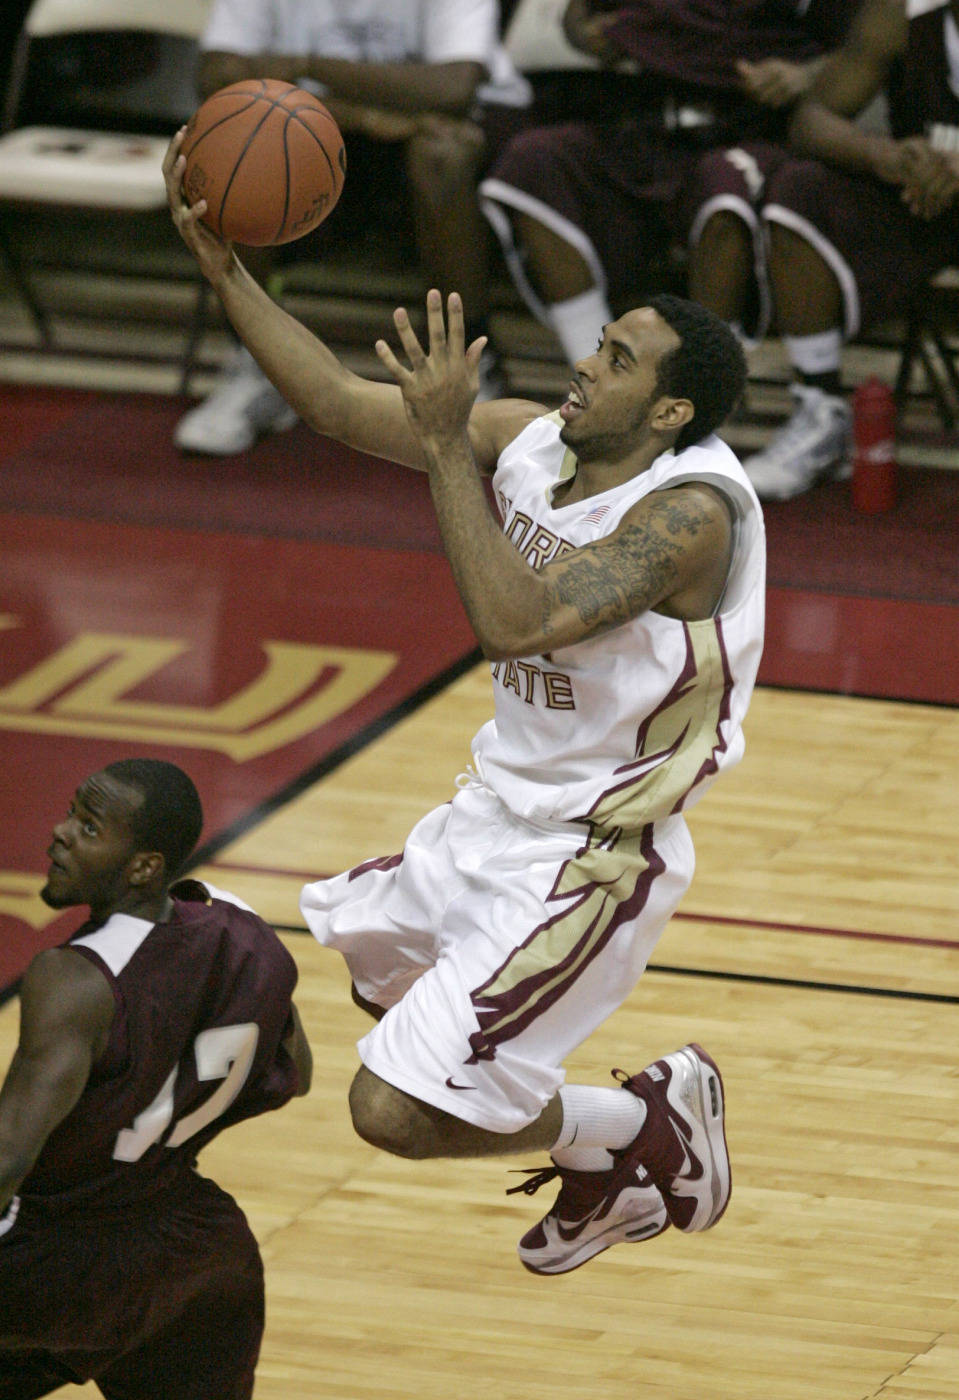 Florida State's Derwin Kitchen scores on a breakaway past the defense of Alabama A&M's Jabari DeSheilds in the first half of an NCAA college basketball game Thursday, Dec. 31, 2009, in Tallahassee, Fla. (AP Photo/Steve Cannon)